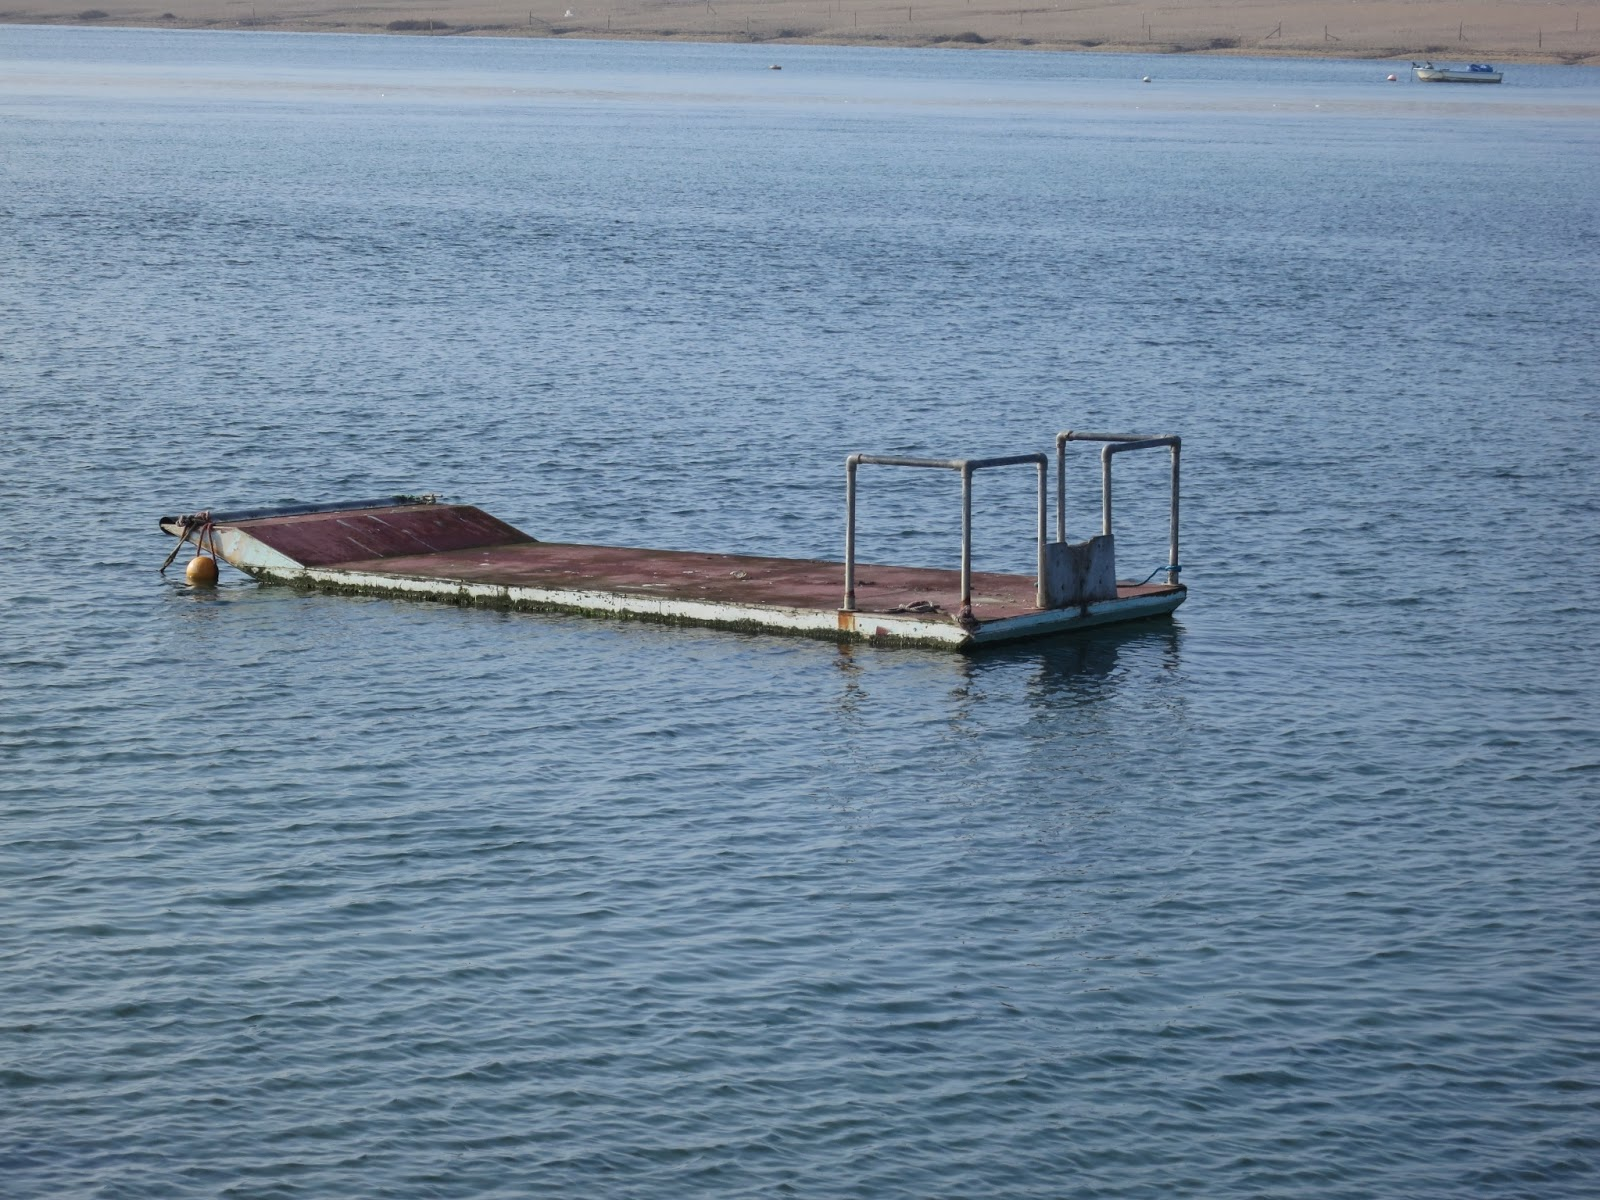 Platform with railing on Fleet Lagoon in Dorset. Blue water with ripples.